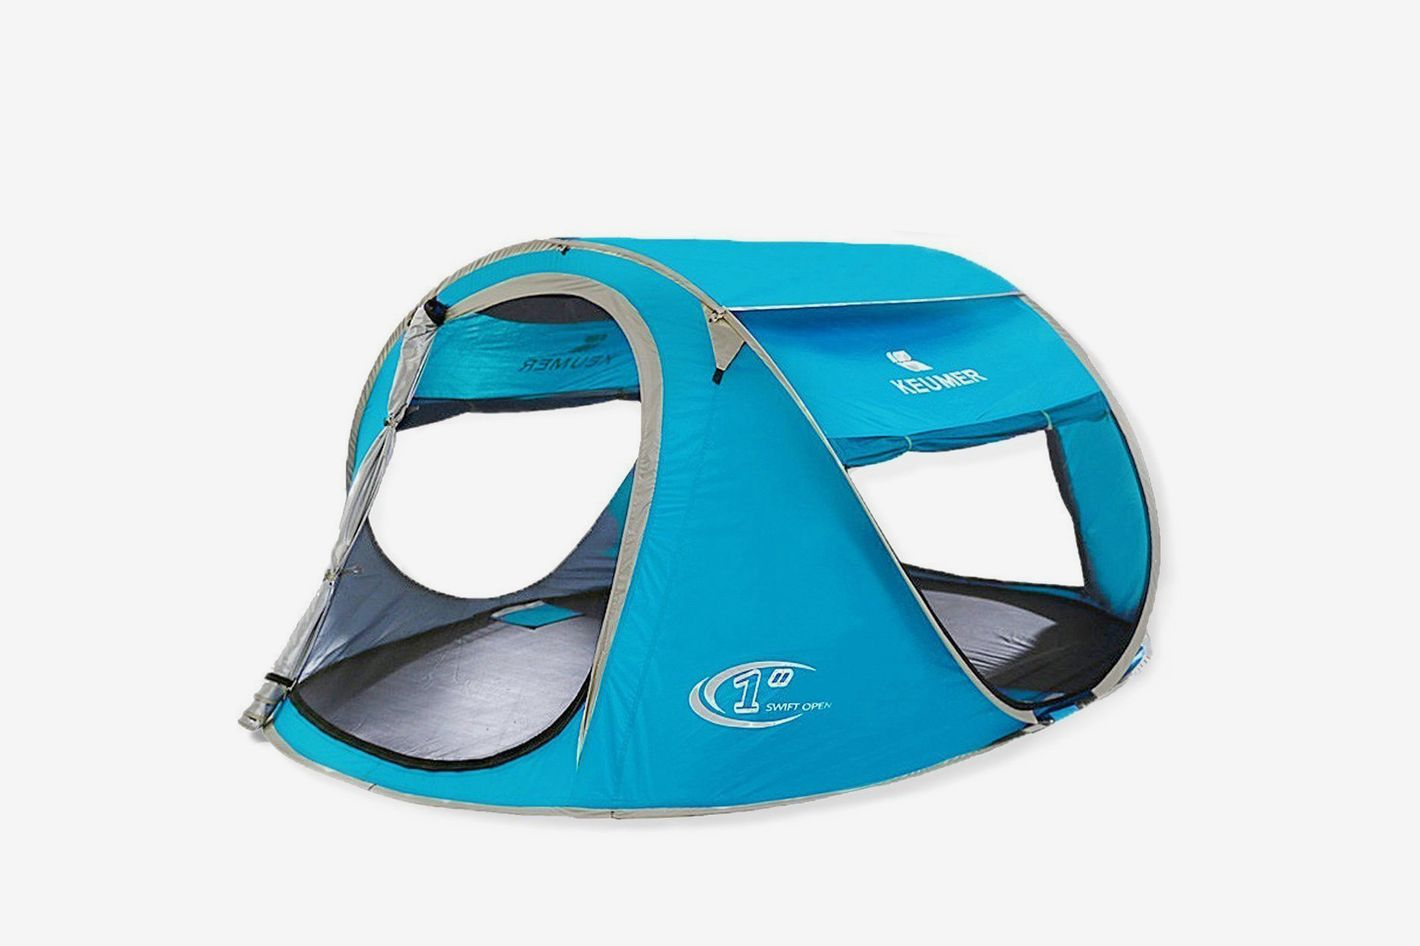 The 9 Best Beach Tents For Sun Shelter And Protection 2018